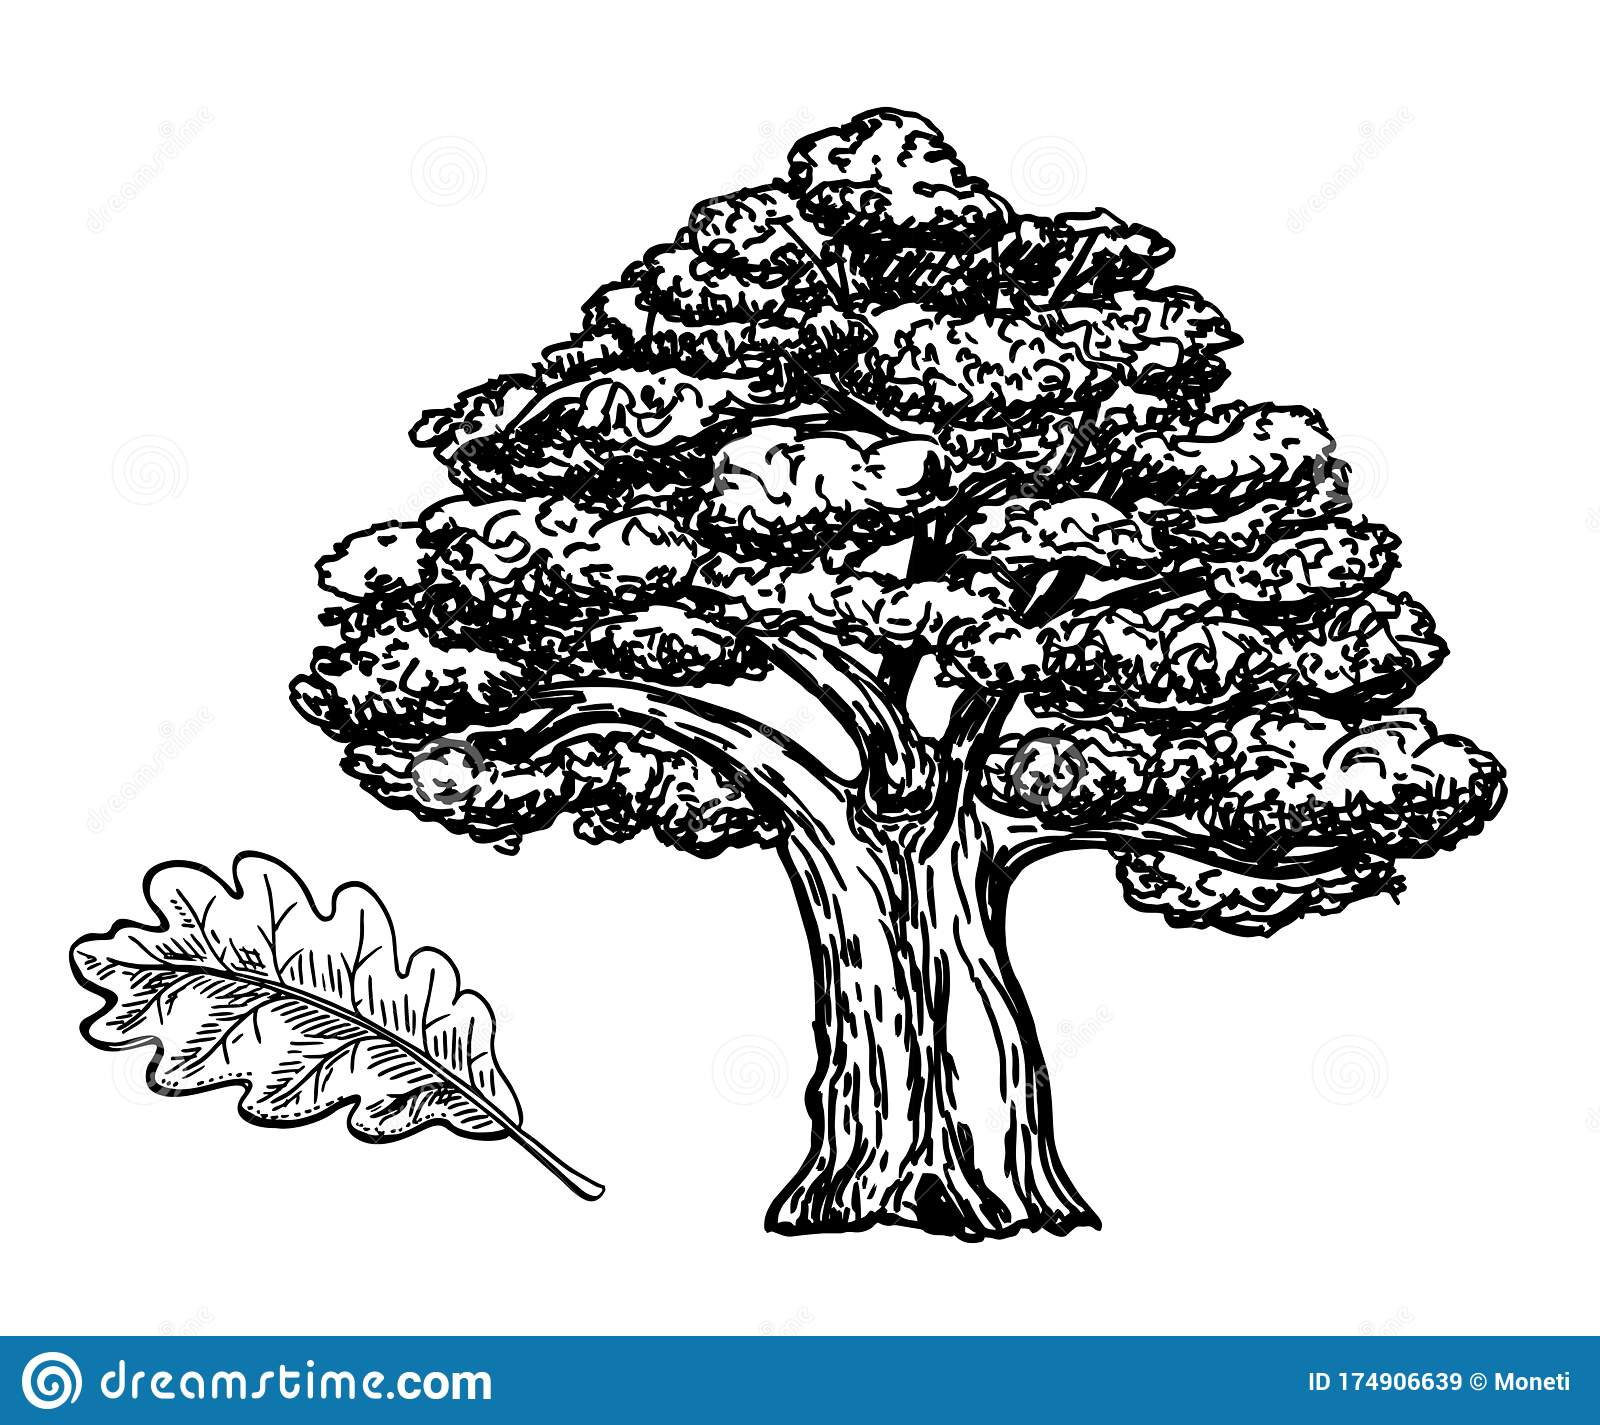 Oak Sketch Vintage Tree Sketch Illustration Vector Hand Drawn Illustration Of Big Tree Isolated On White Background Stock Vector Illustration Of Outdoor Forest 174906639